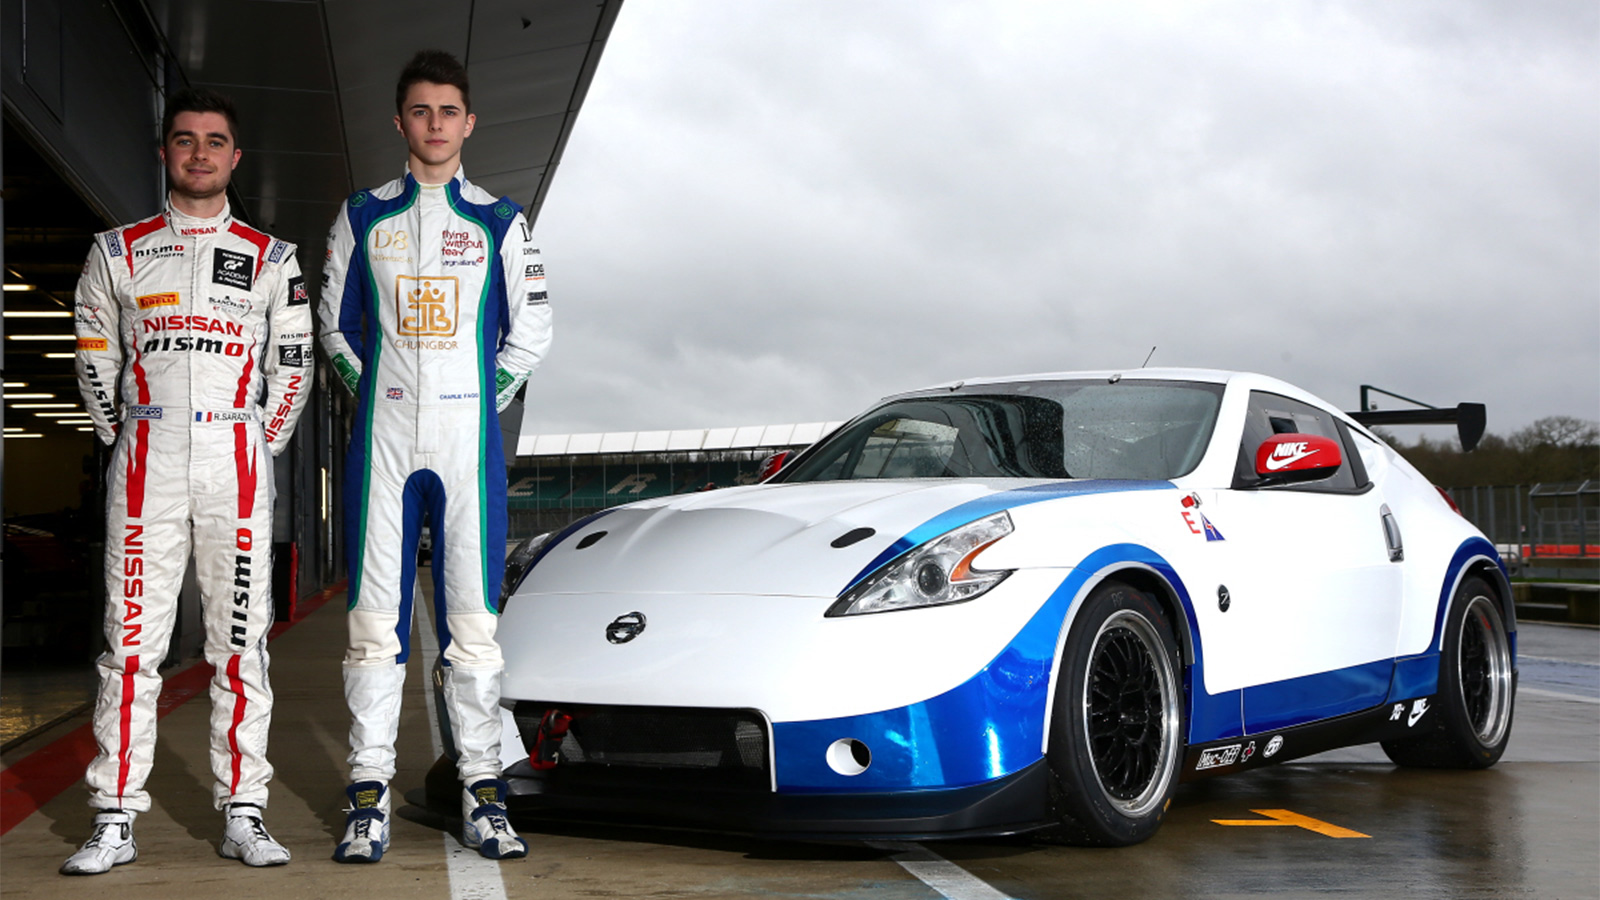 Team-mates Fagg and Sarazin relishing first outing together with Nissan 370Z.